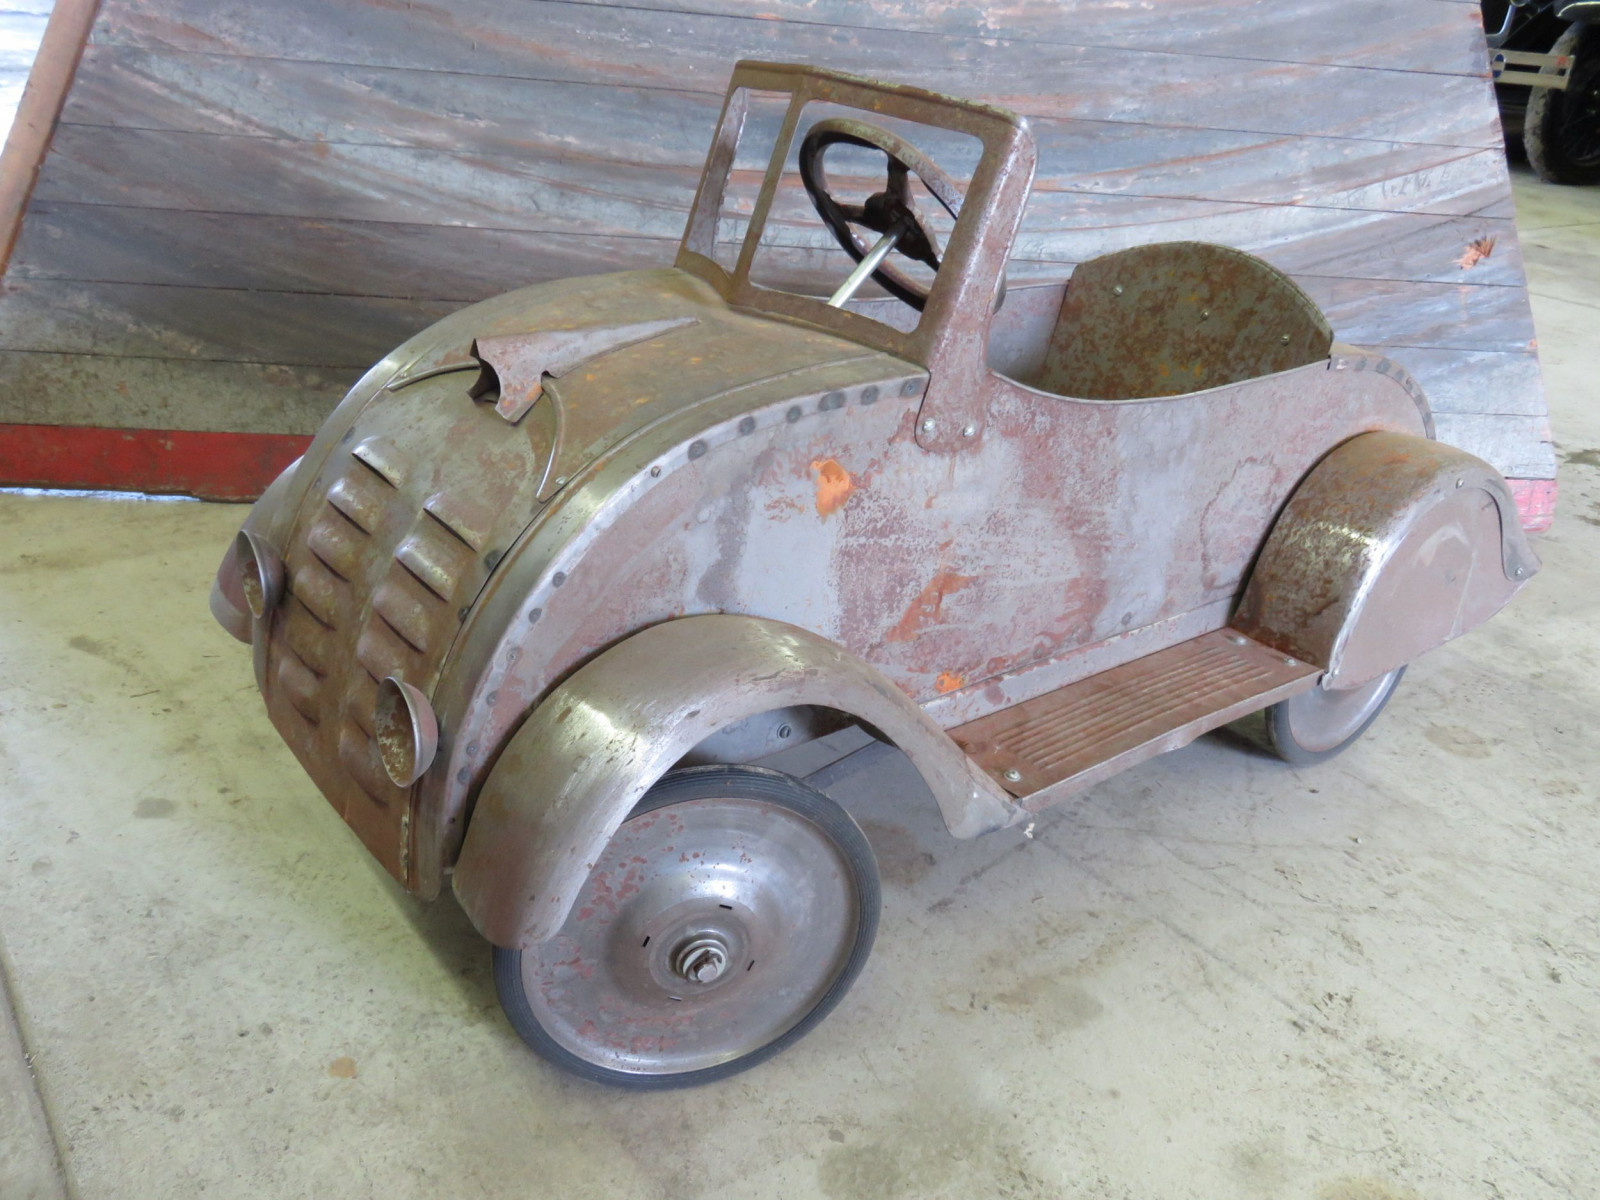 Ornate 1930's Garton DeSoto Airflow Pedal Car for Restore - Image 1